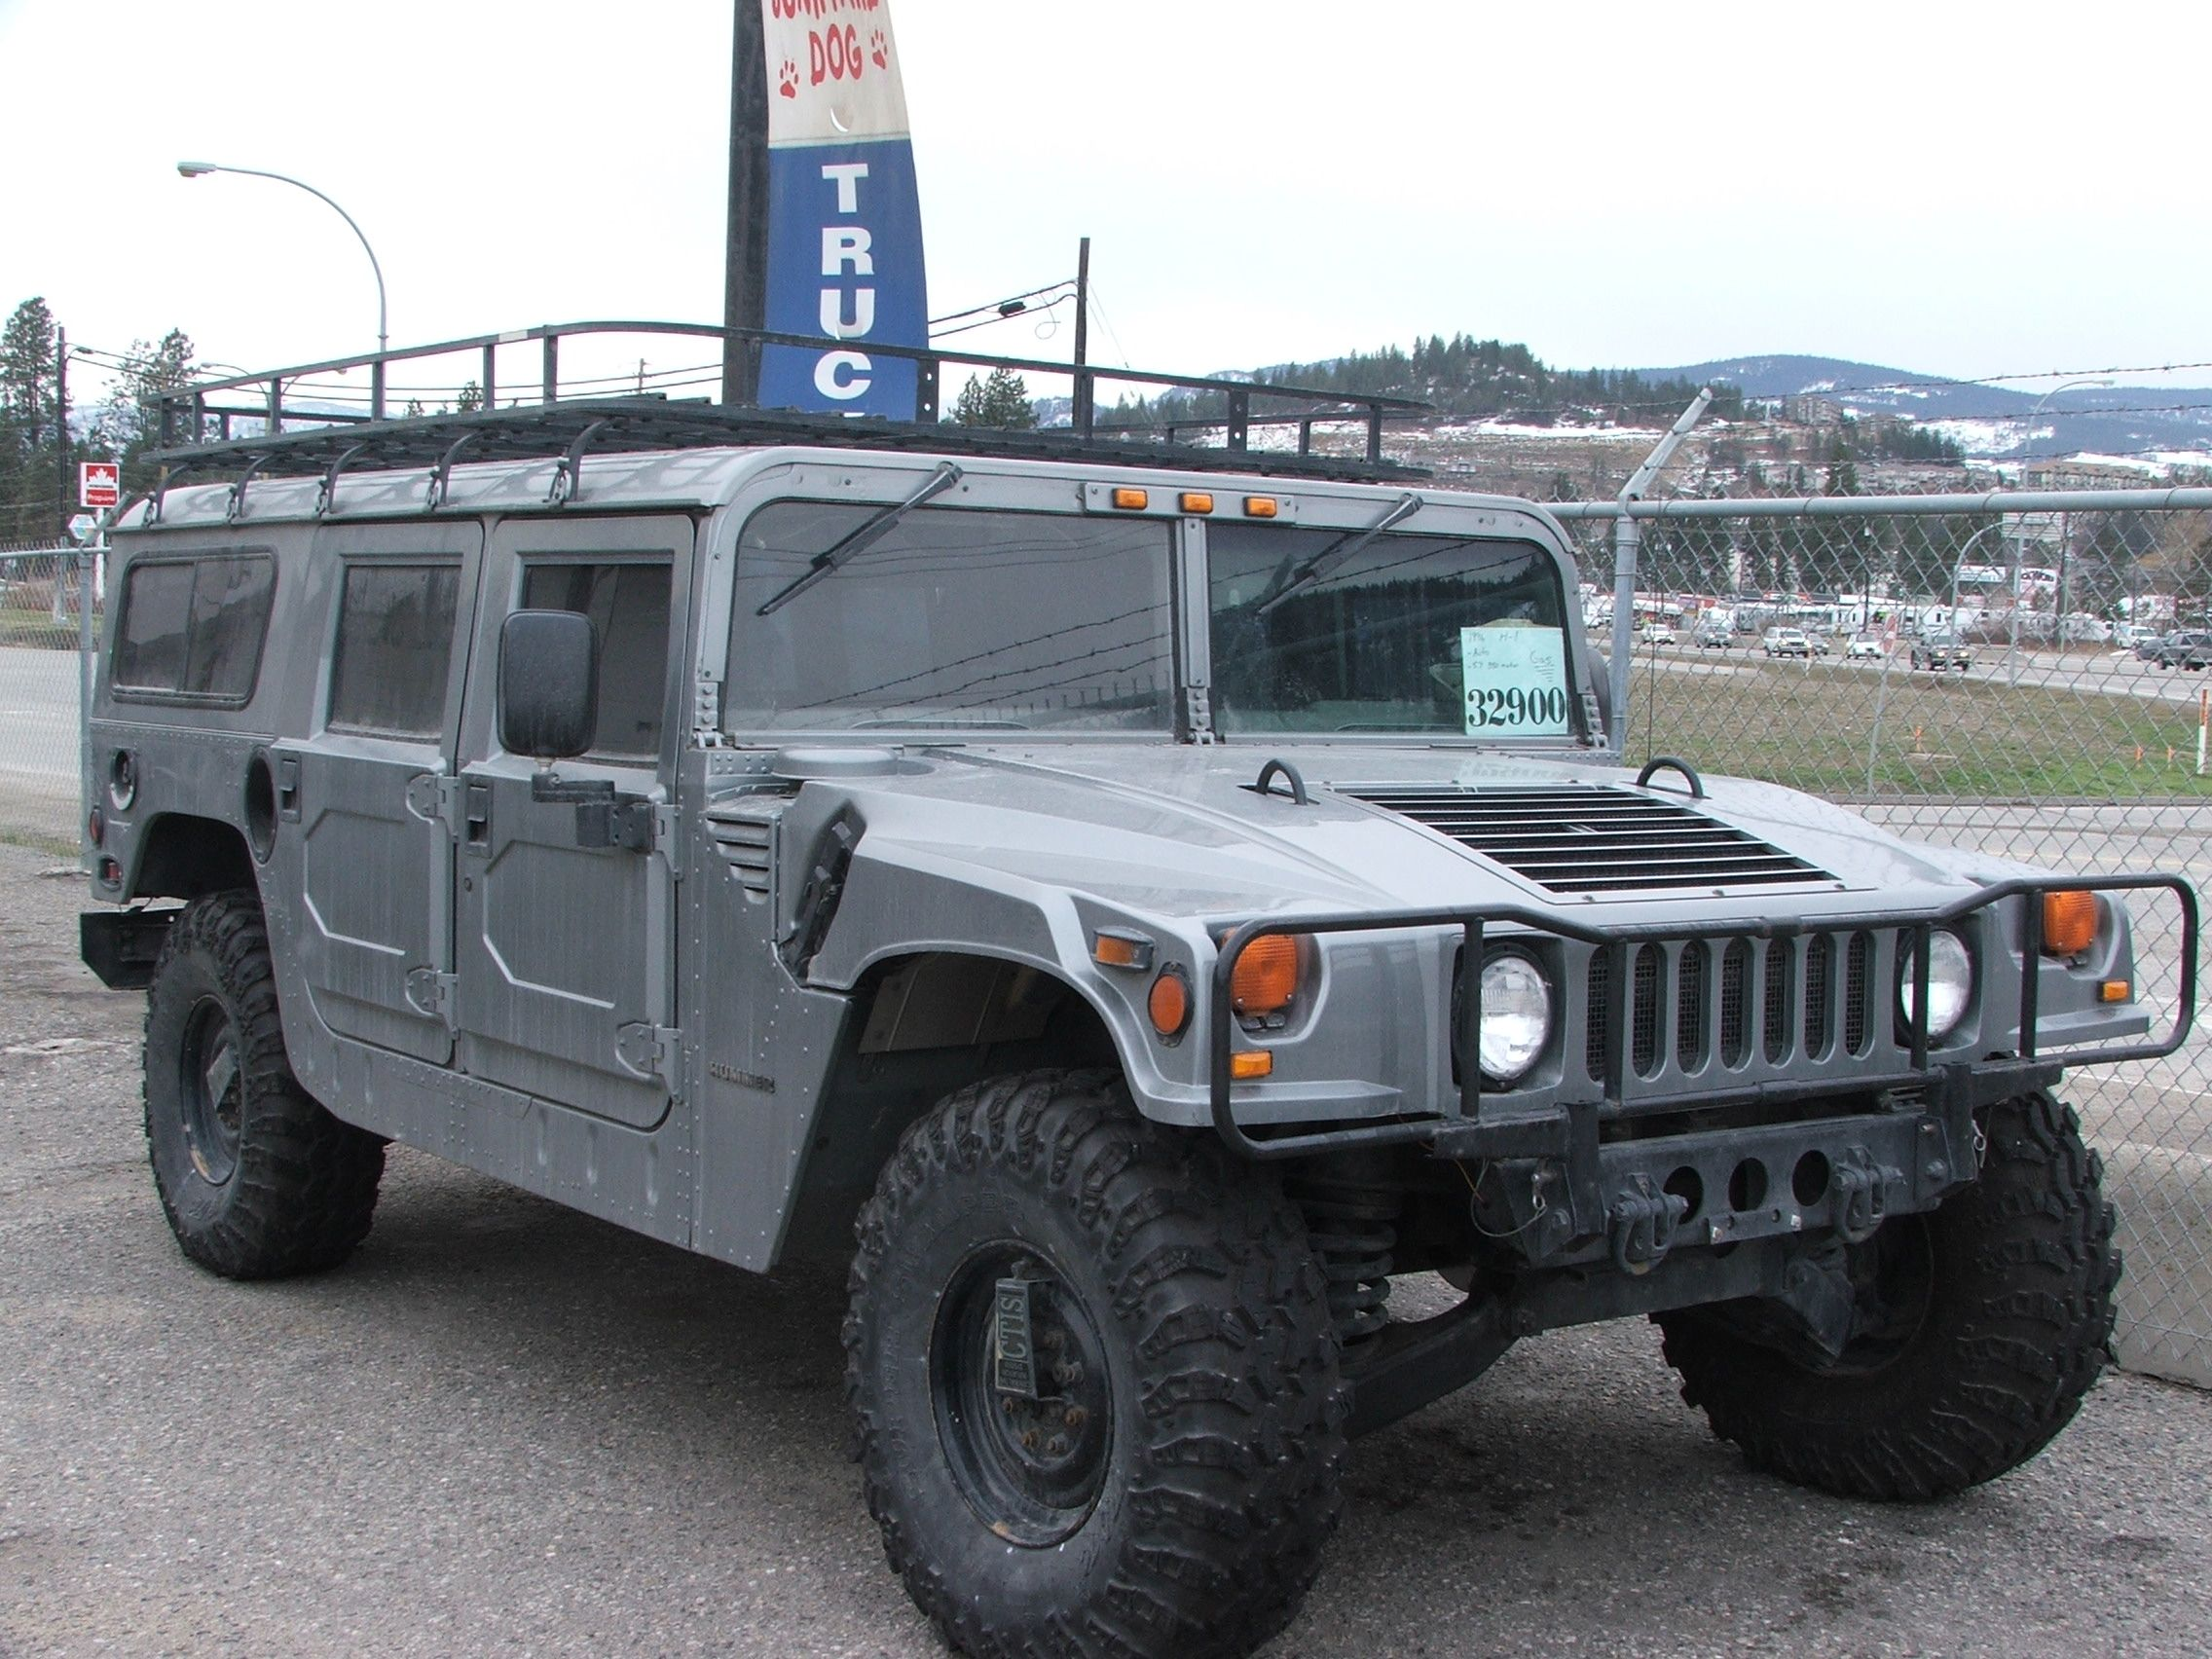 hummer - Yahoo Image Search Results   Ride   Pinterest   Hummer